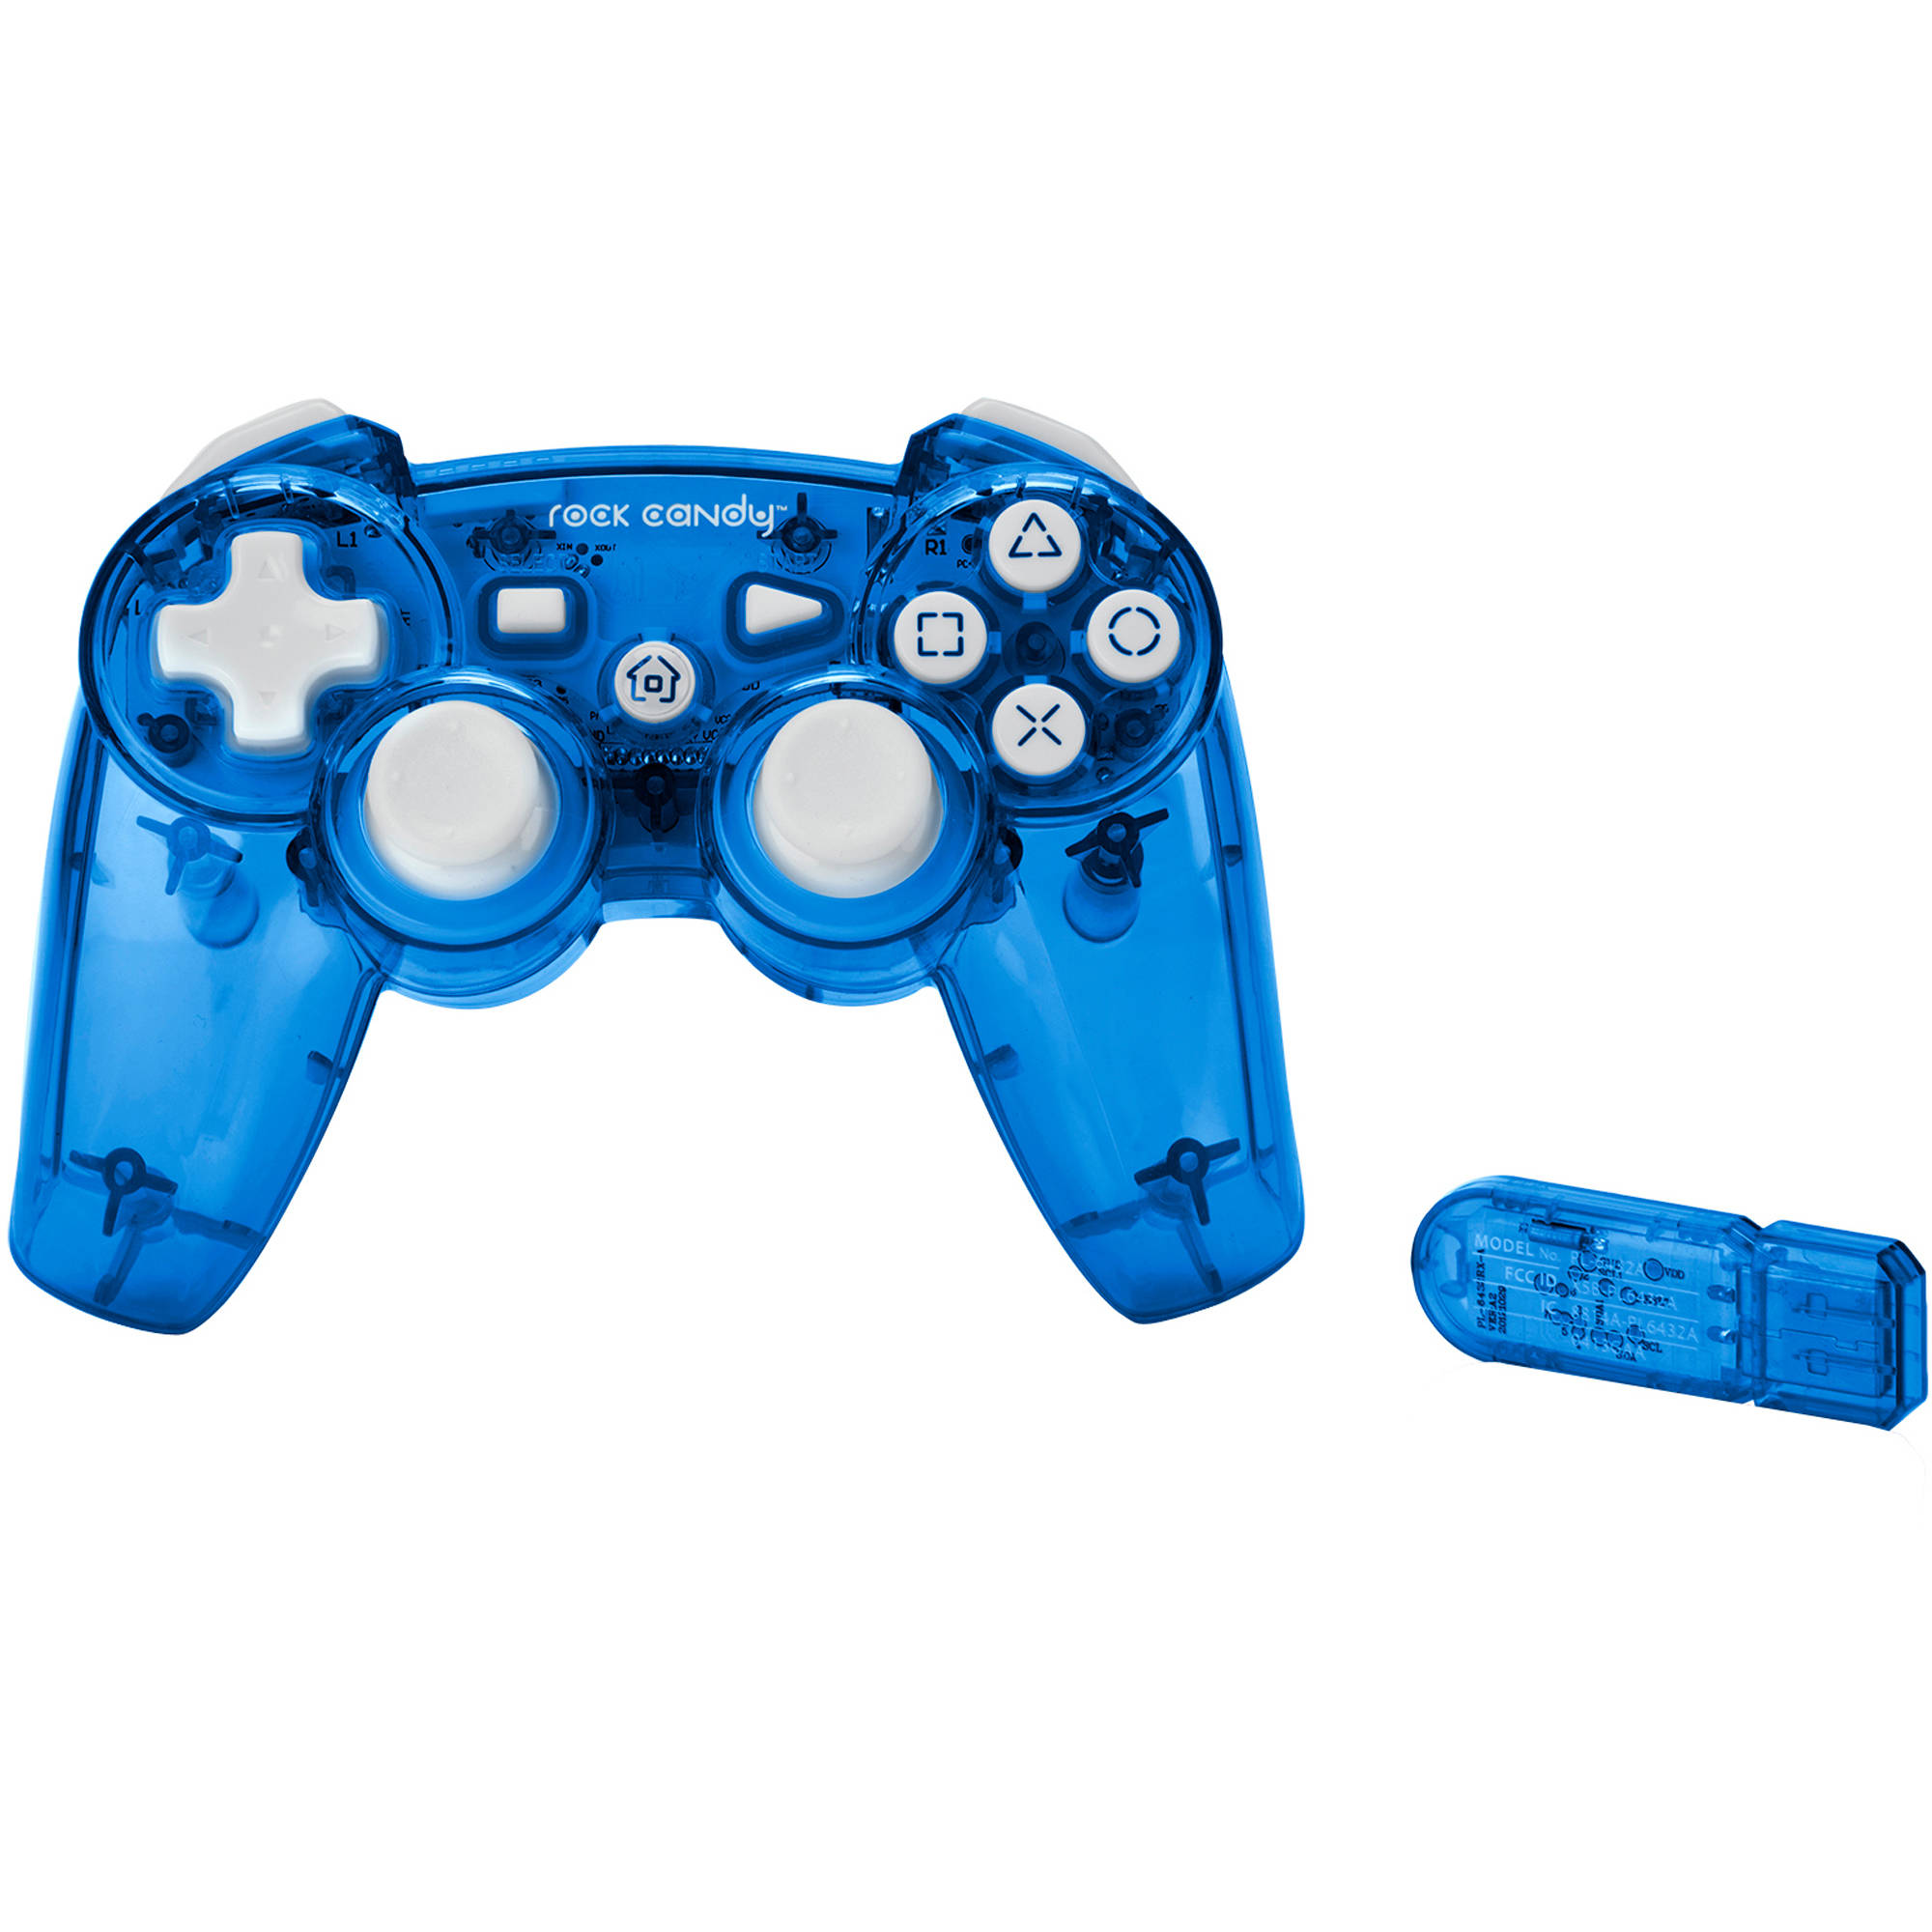 Rock Candy Wireless Controller, Blue (PS3)